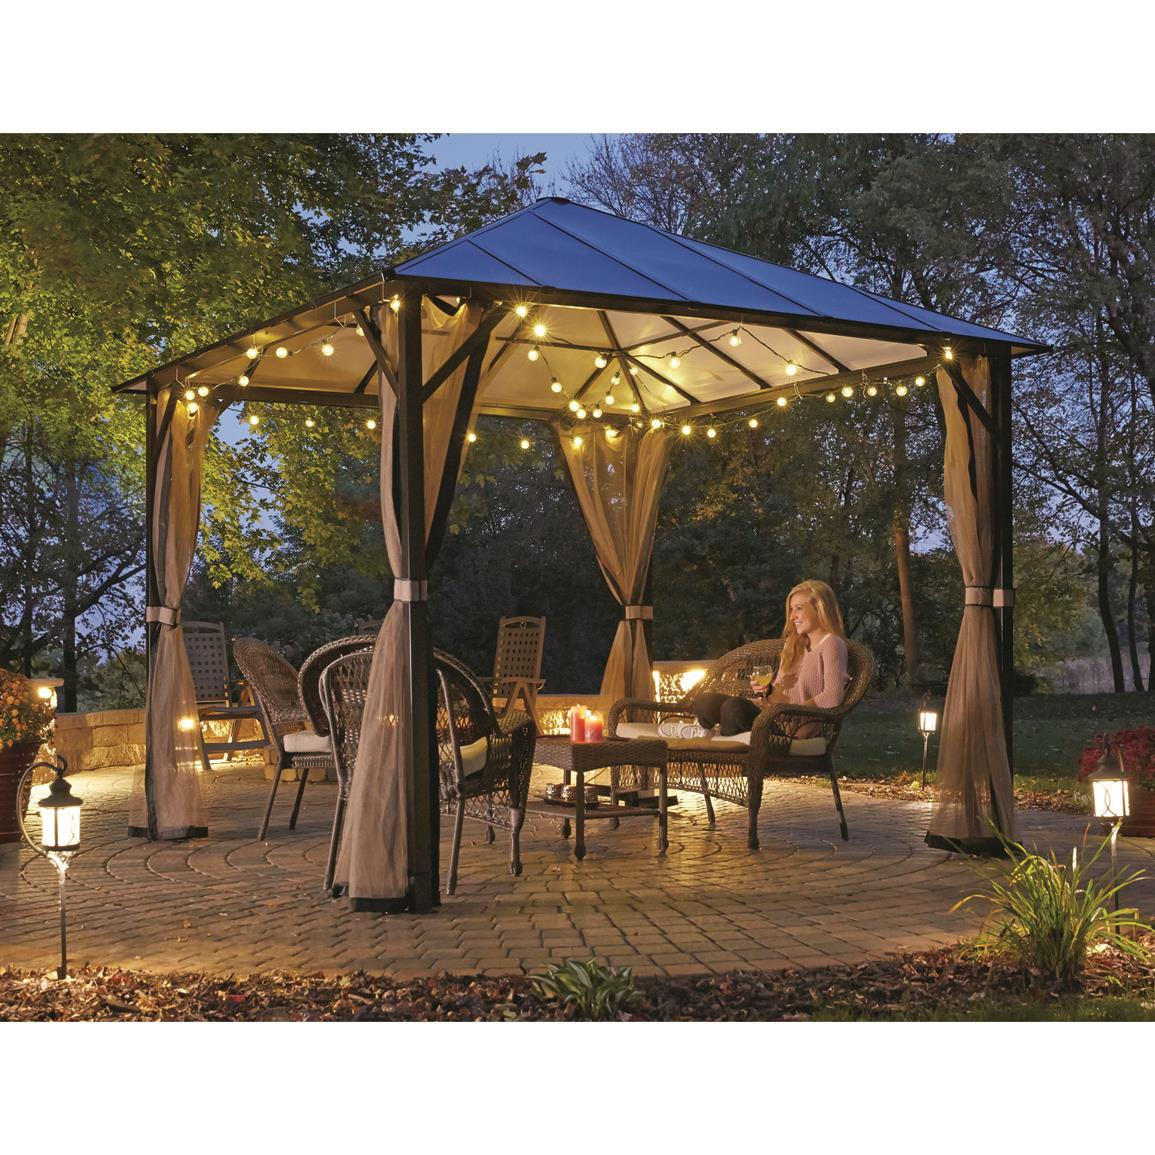 hardtop gazebo hard-top roof for year-round enjoyment UVLTOVY